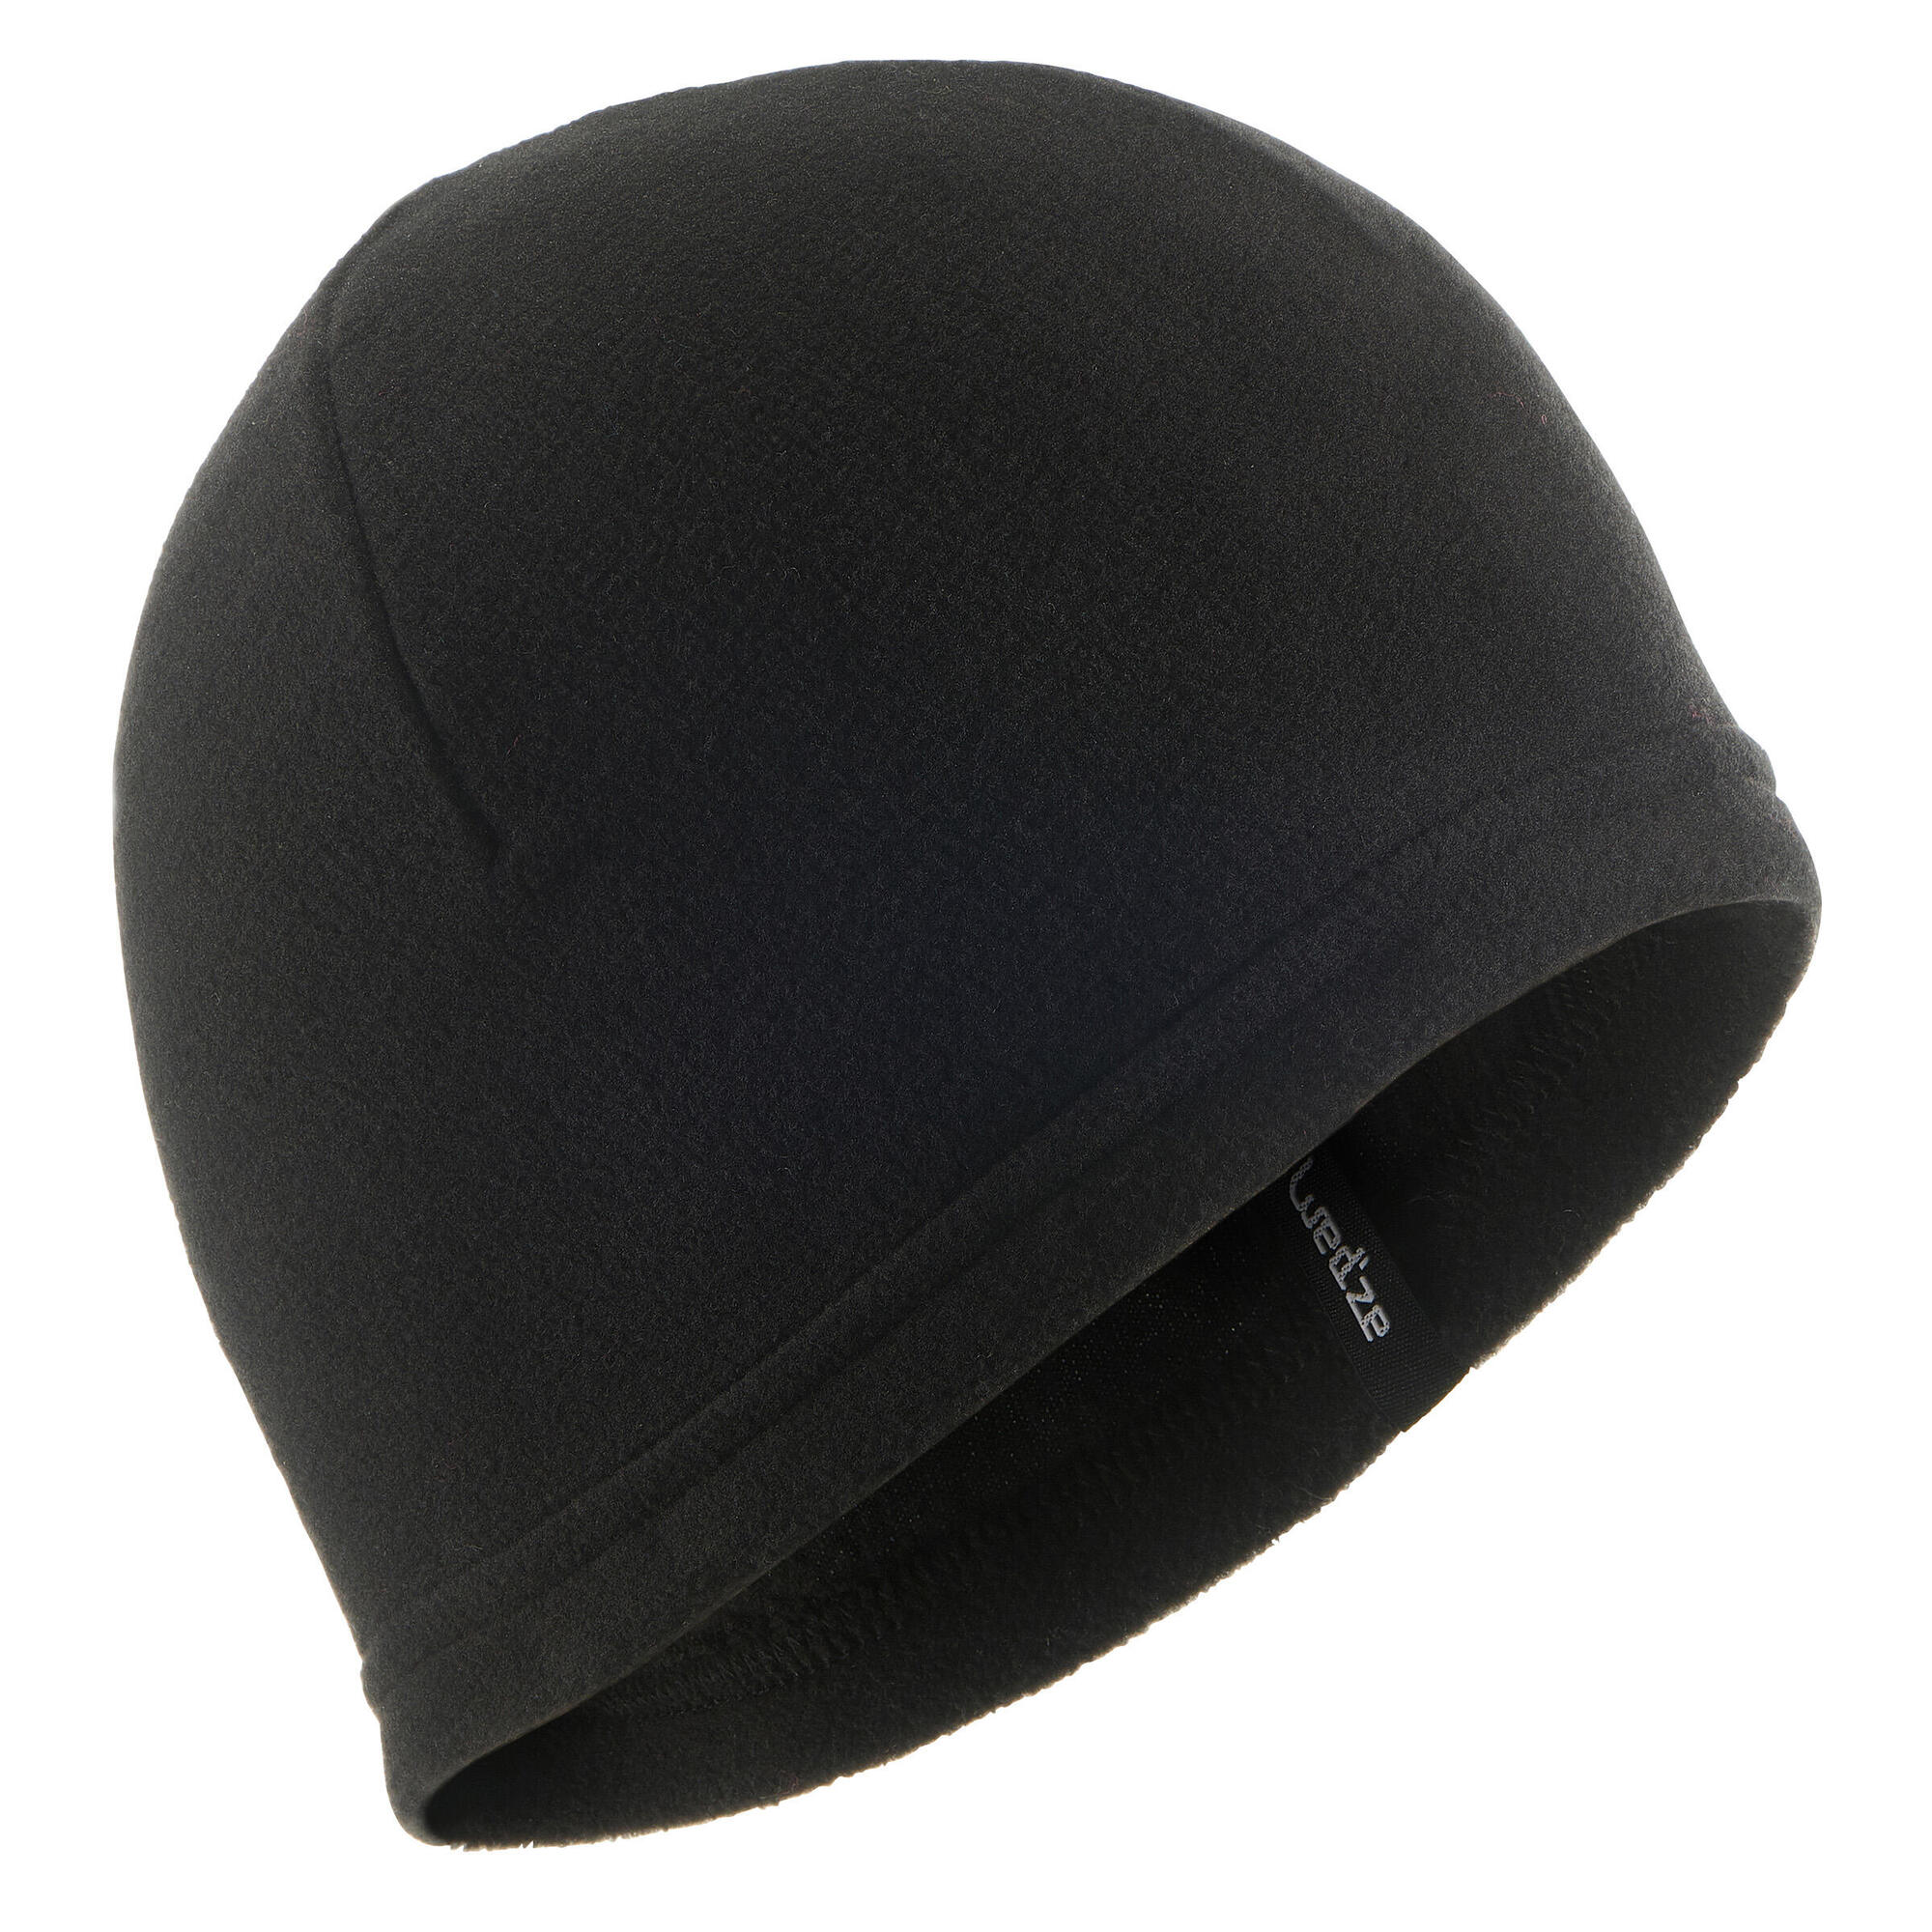 Firstheat Adult Ski Hat - Black  12d26dc2354